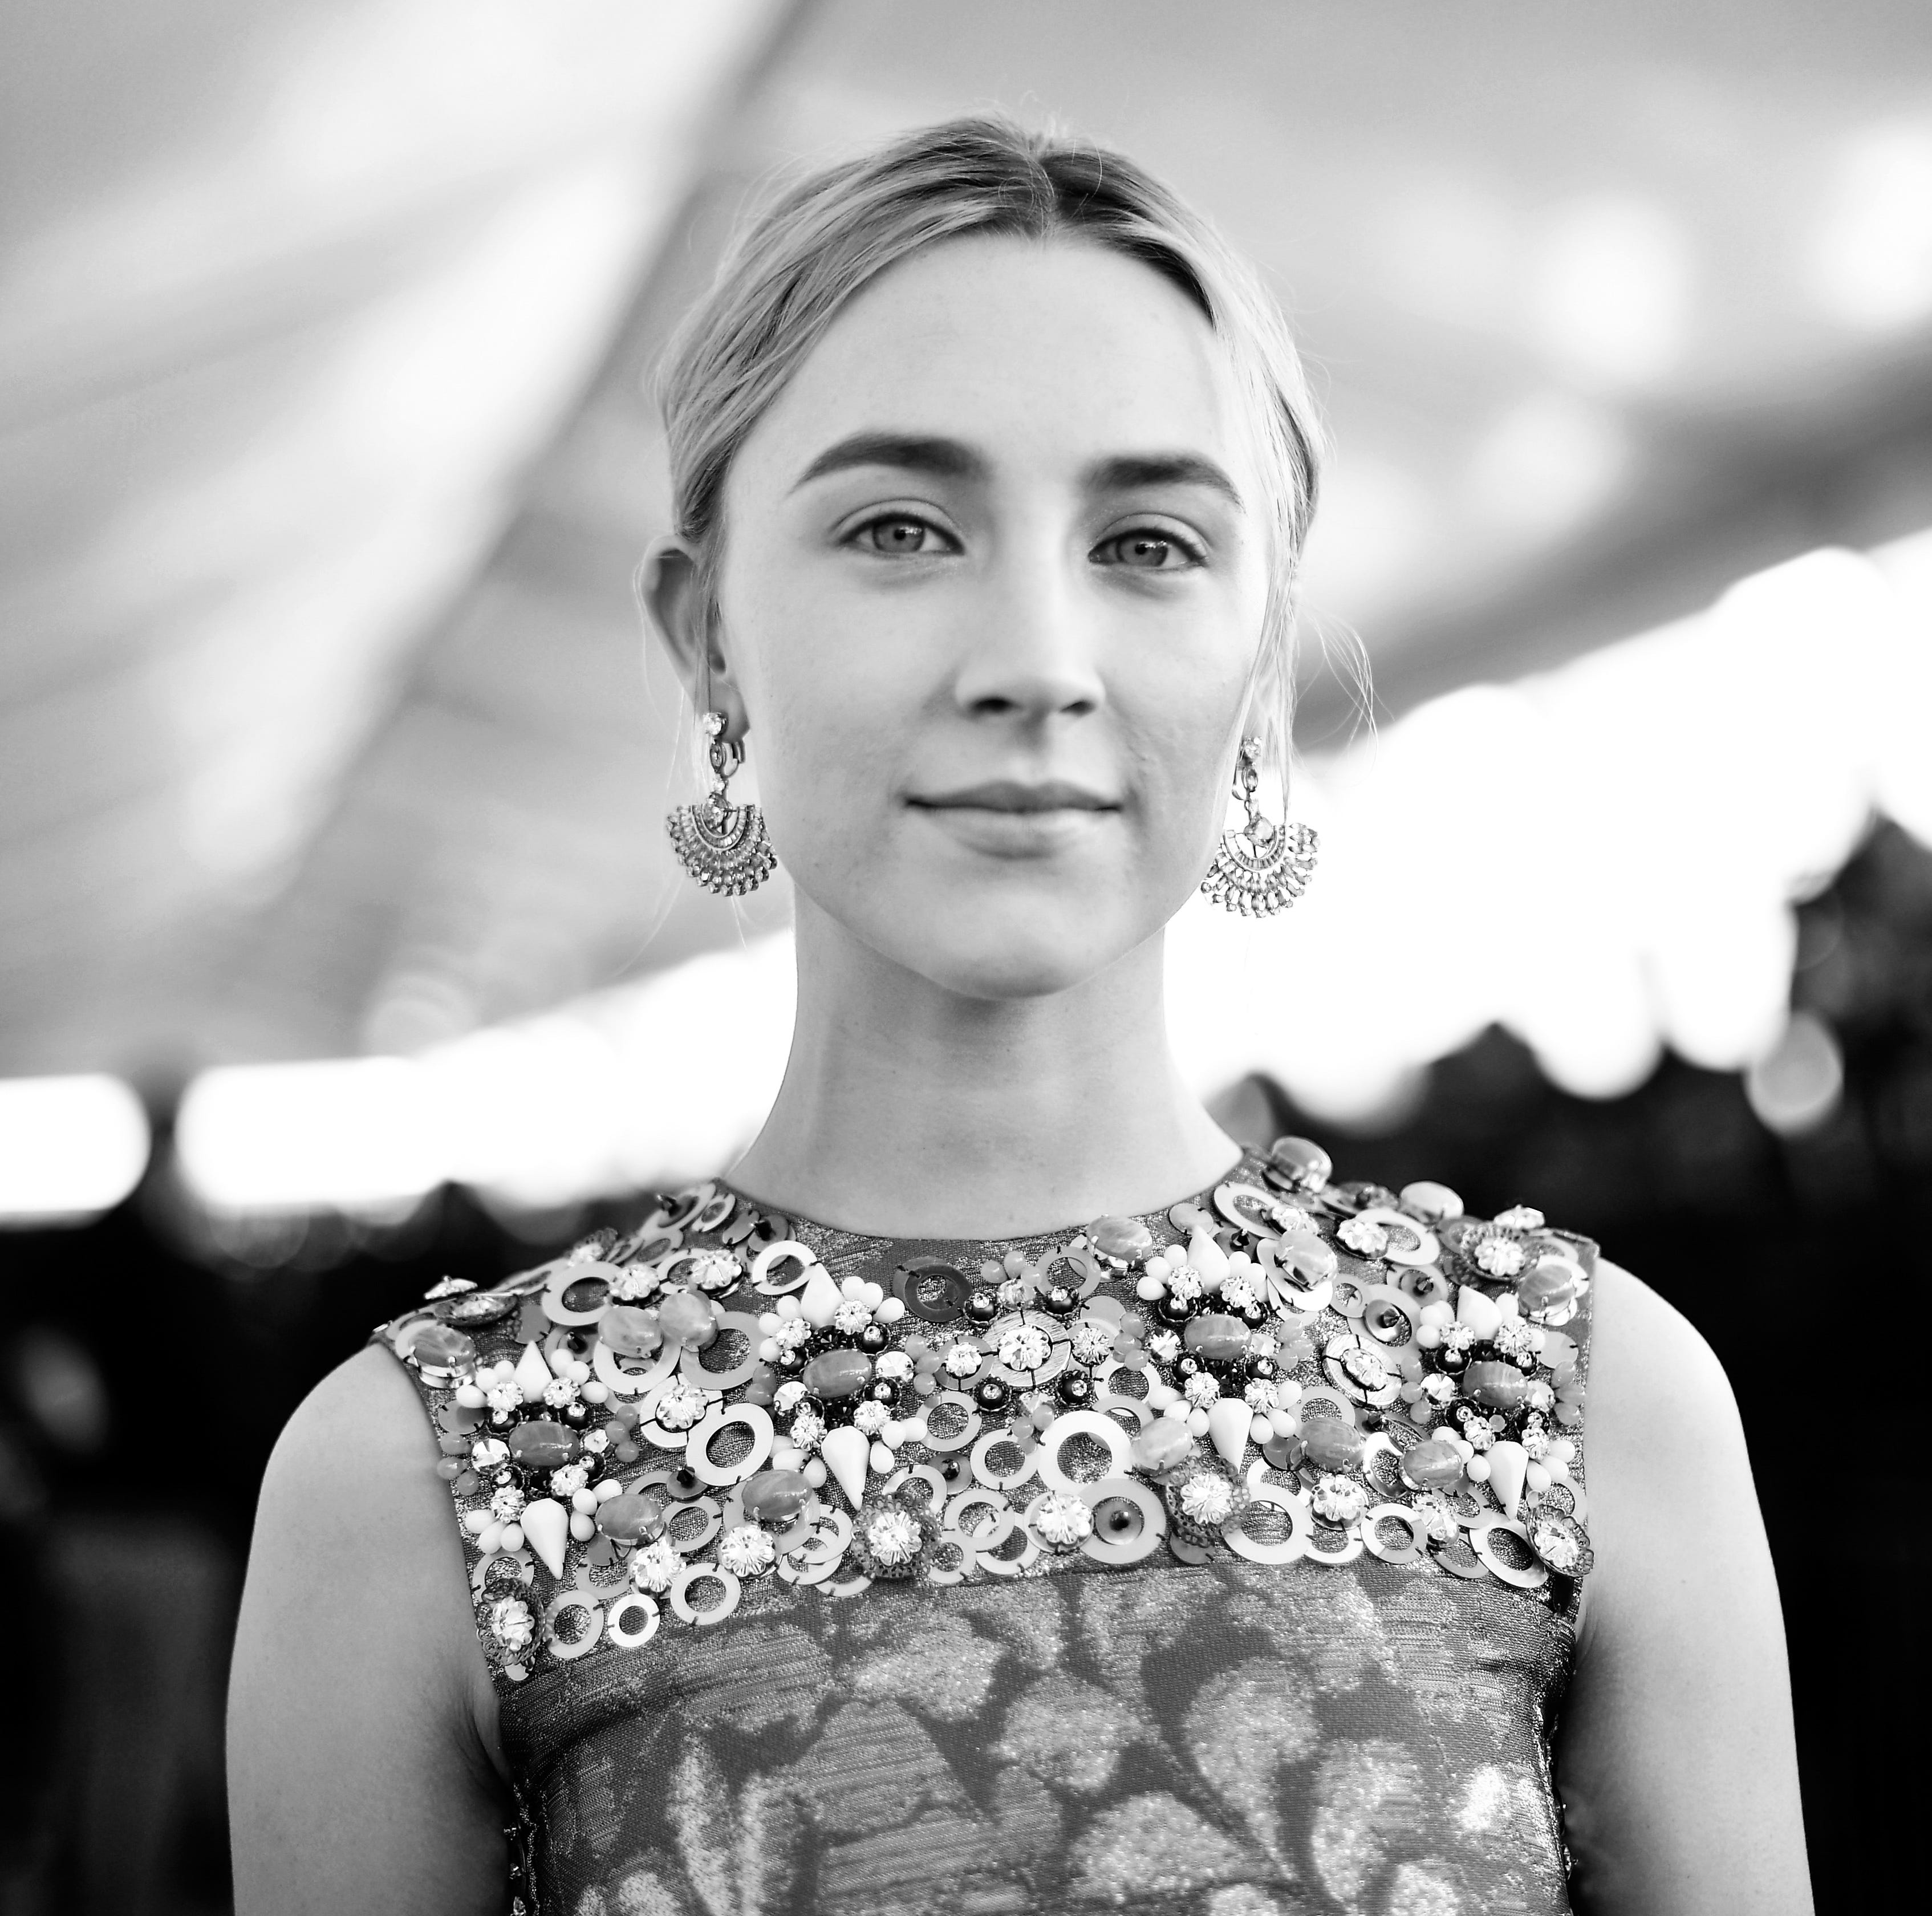 Actress Saoirse Ronan attends the 2018 Film Independent Spirit Awards on March 3, 2018 in Santa Monica, California.